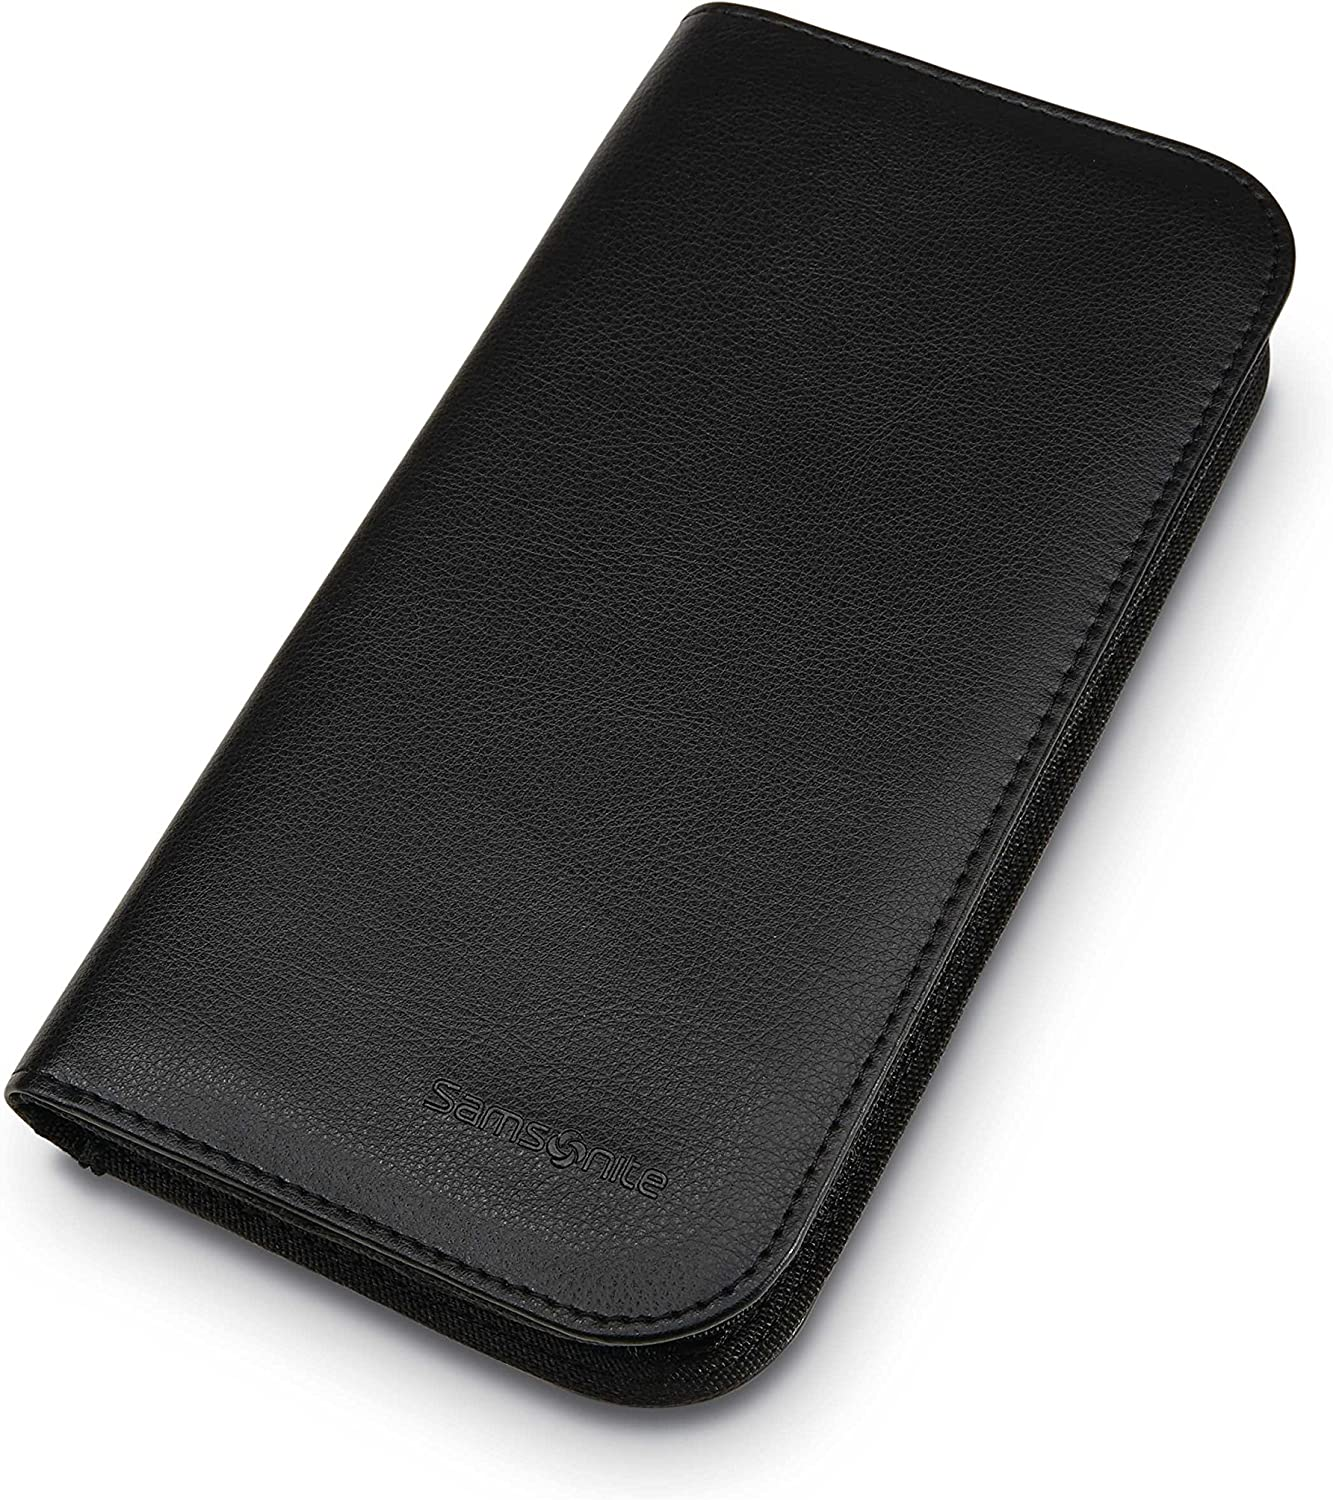 Samsonite Zip Close Travel Wallet, Black, One Size